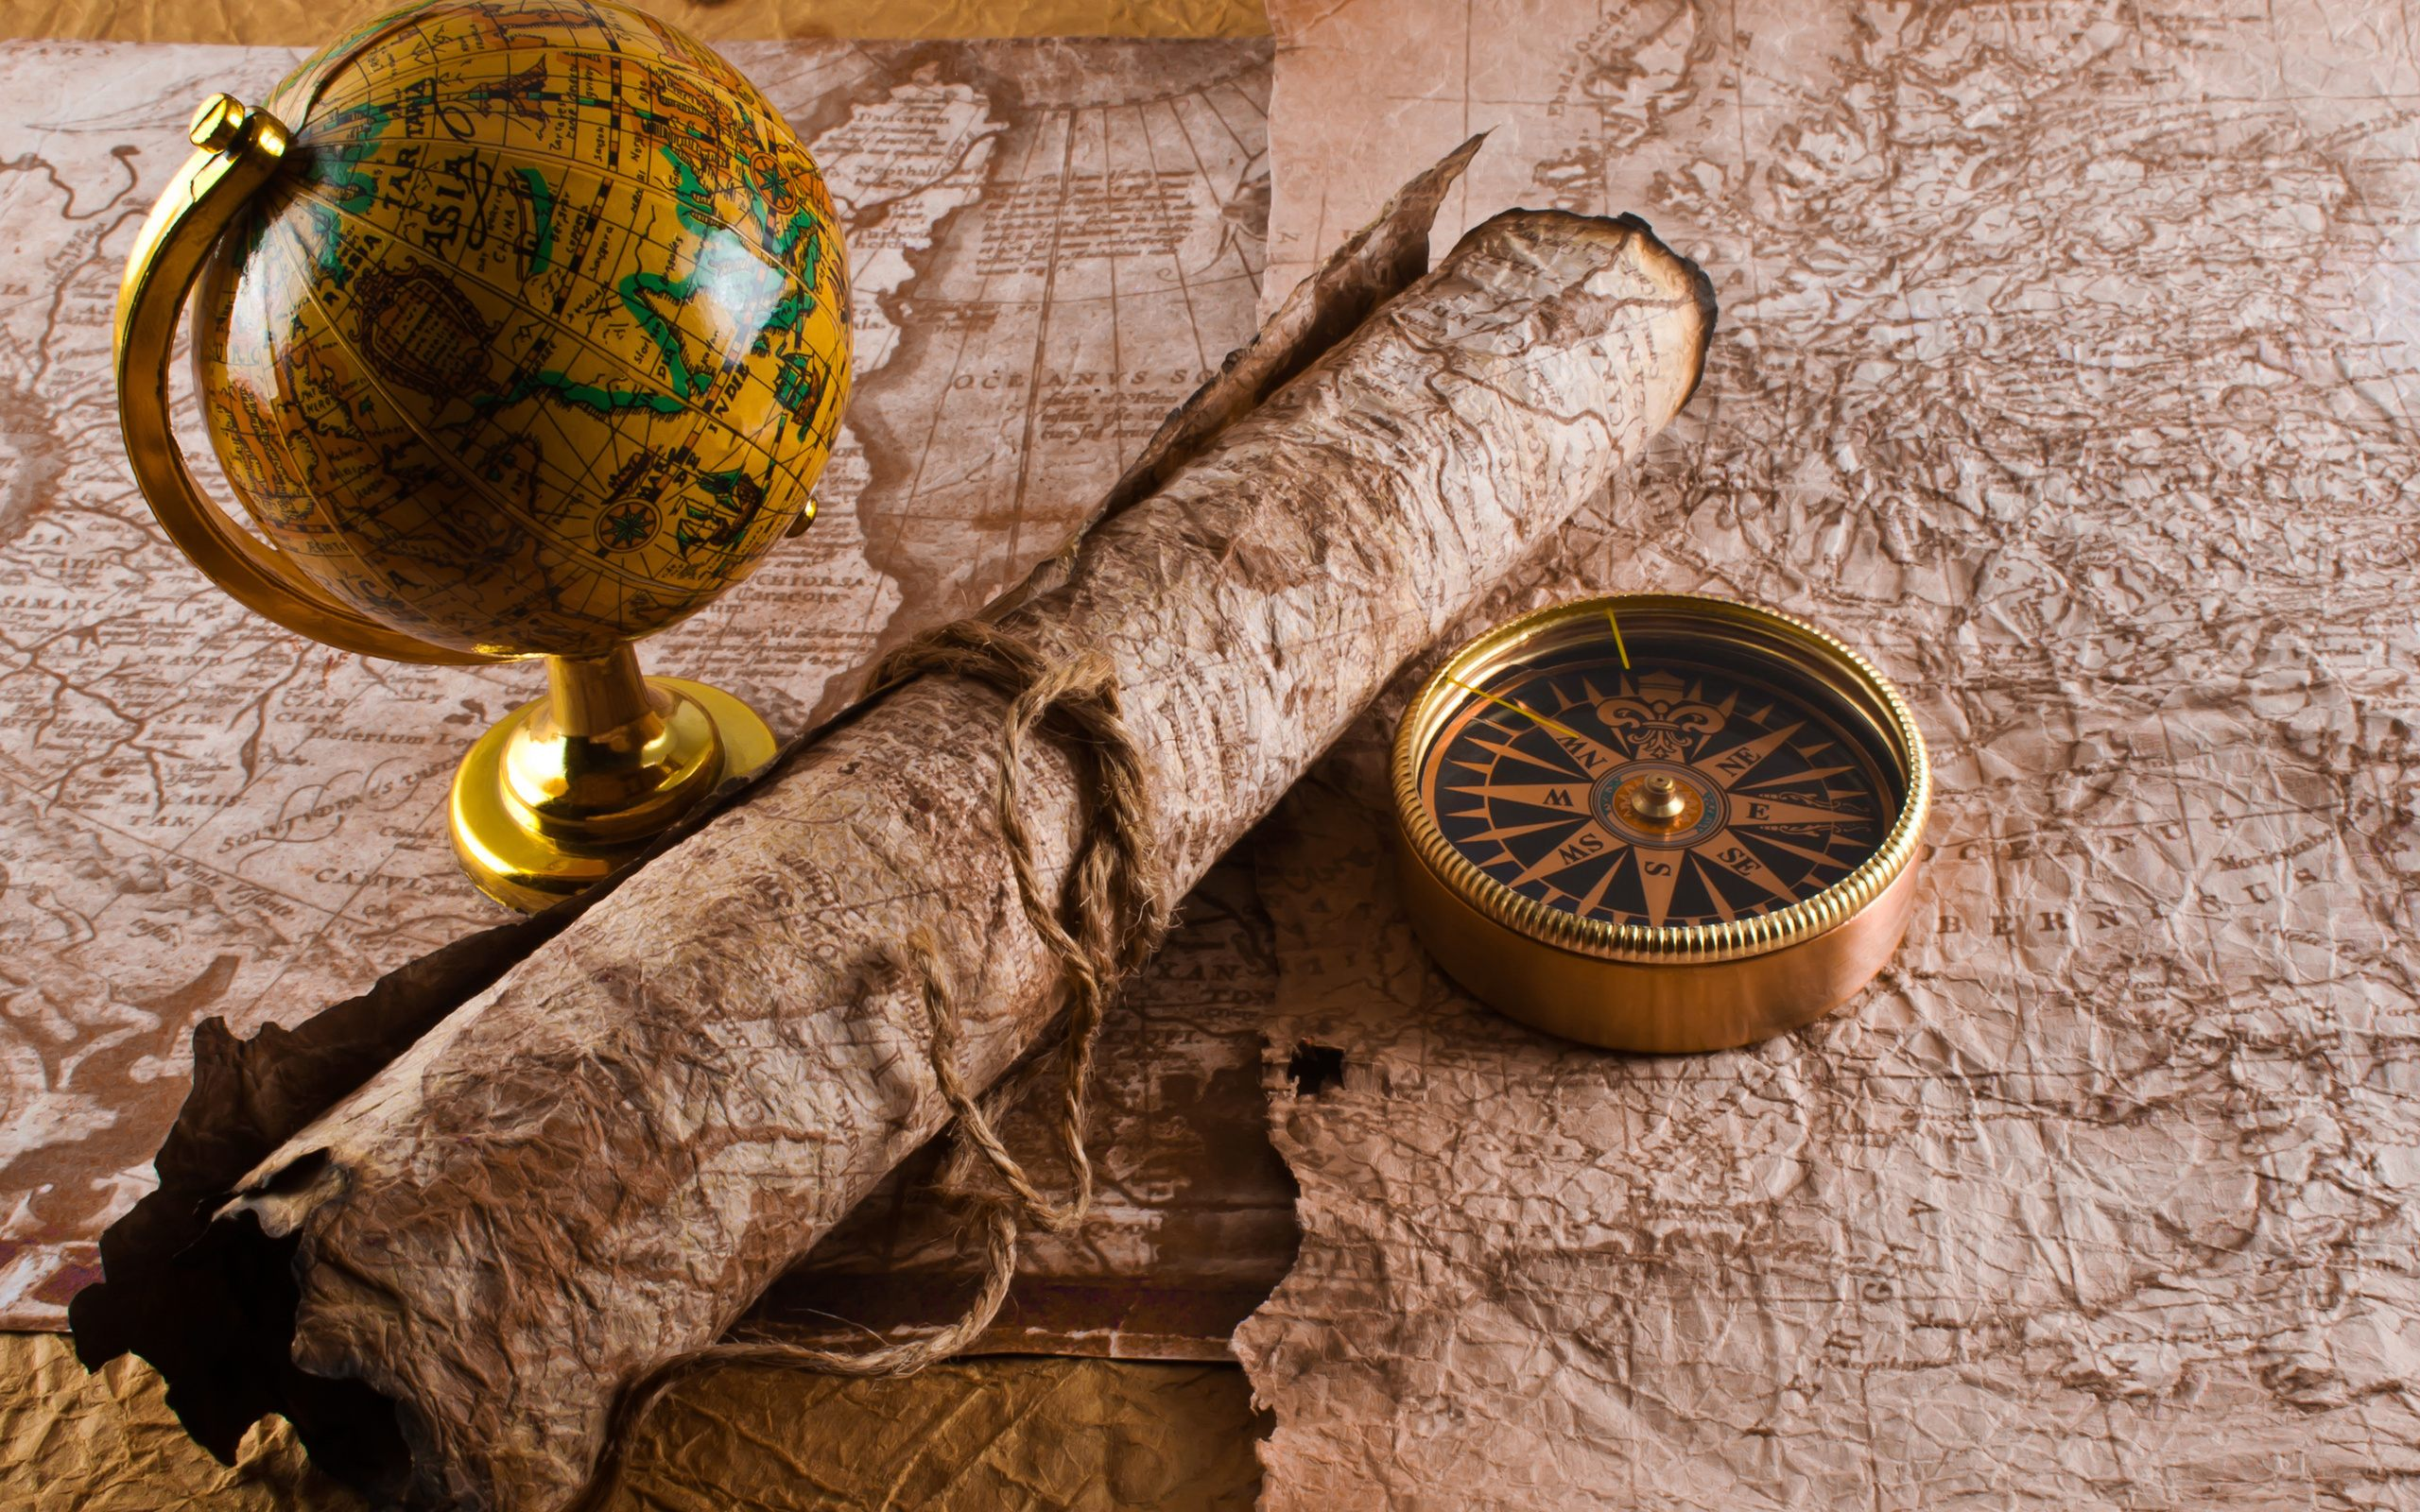 Treasure Hunter Map And Compass Wide 25601600 110216 HD Wallpaper 2560x1600